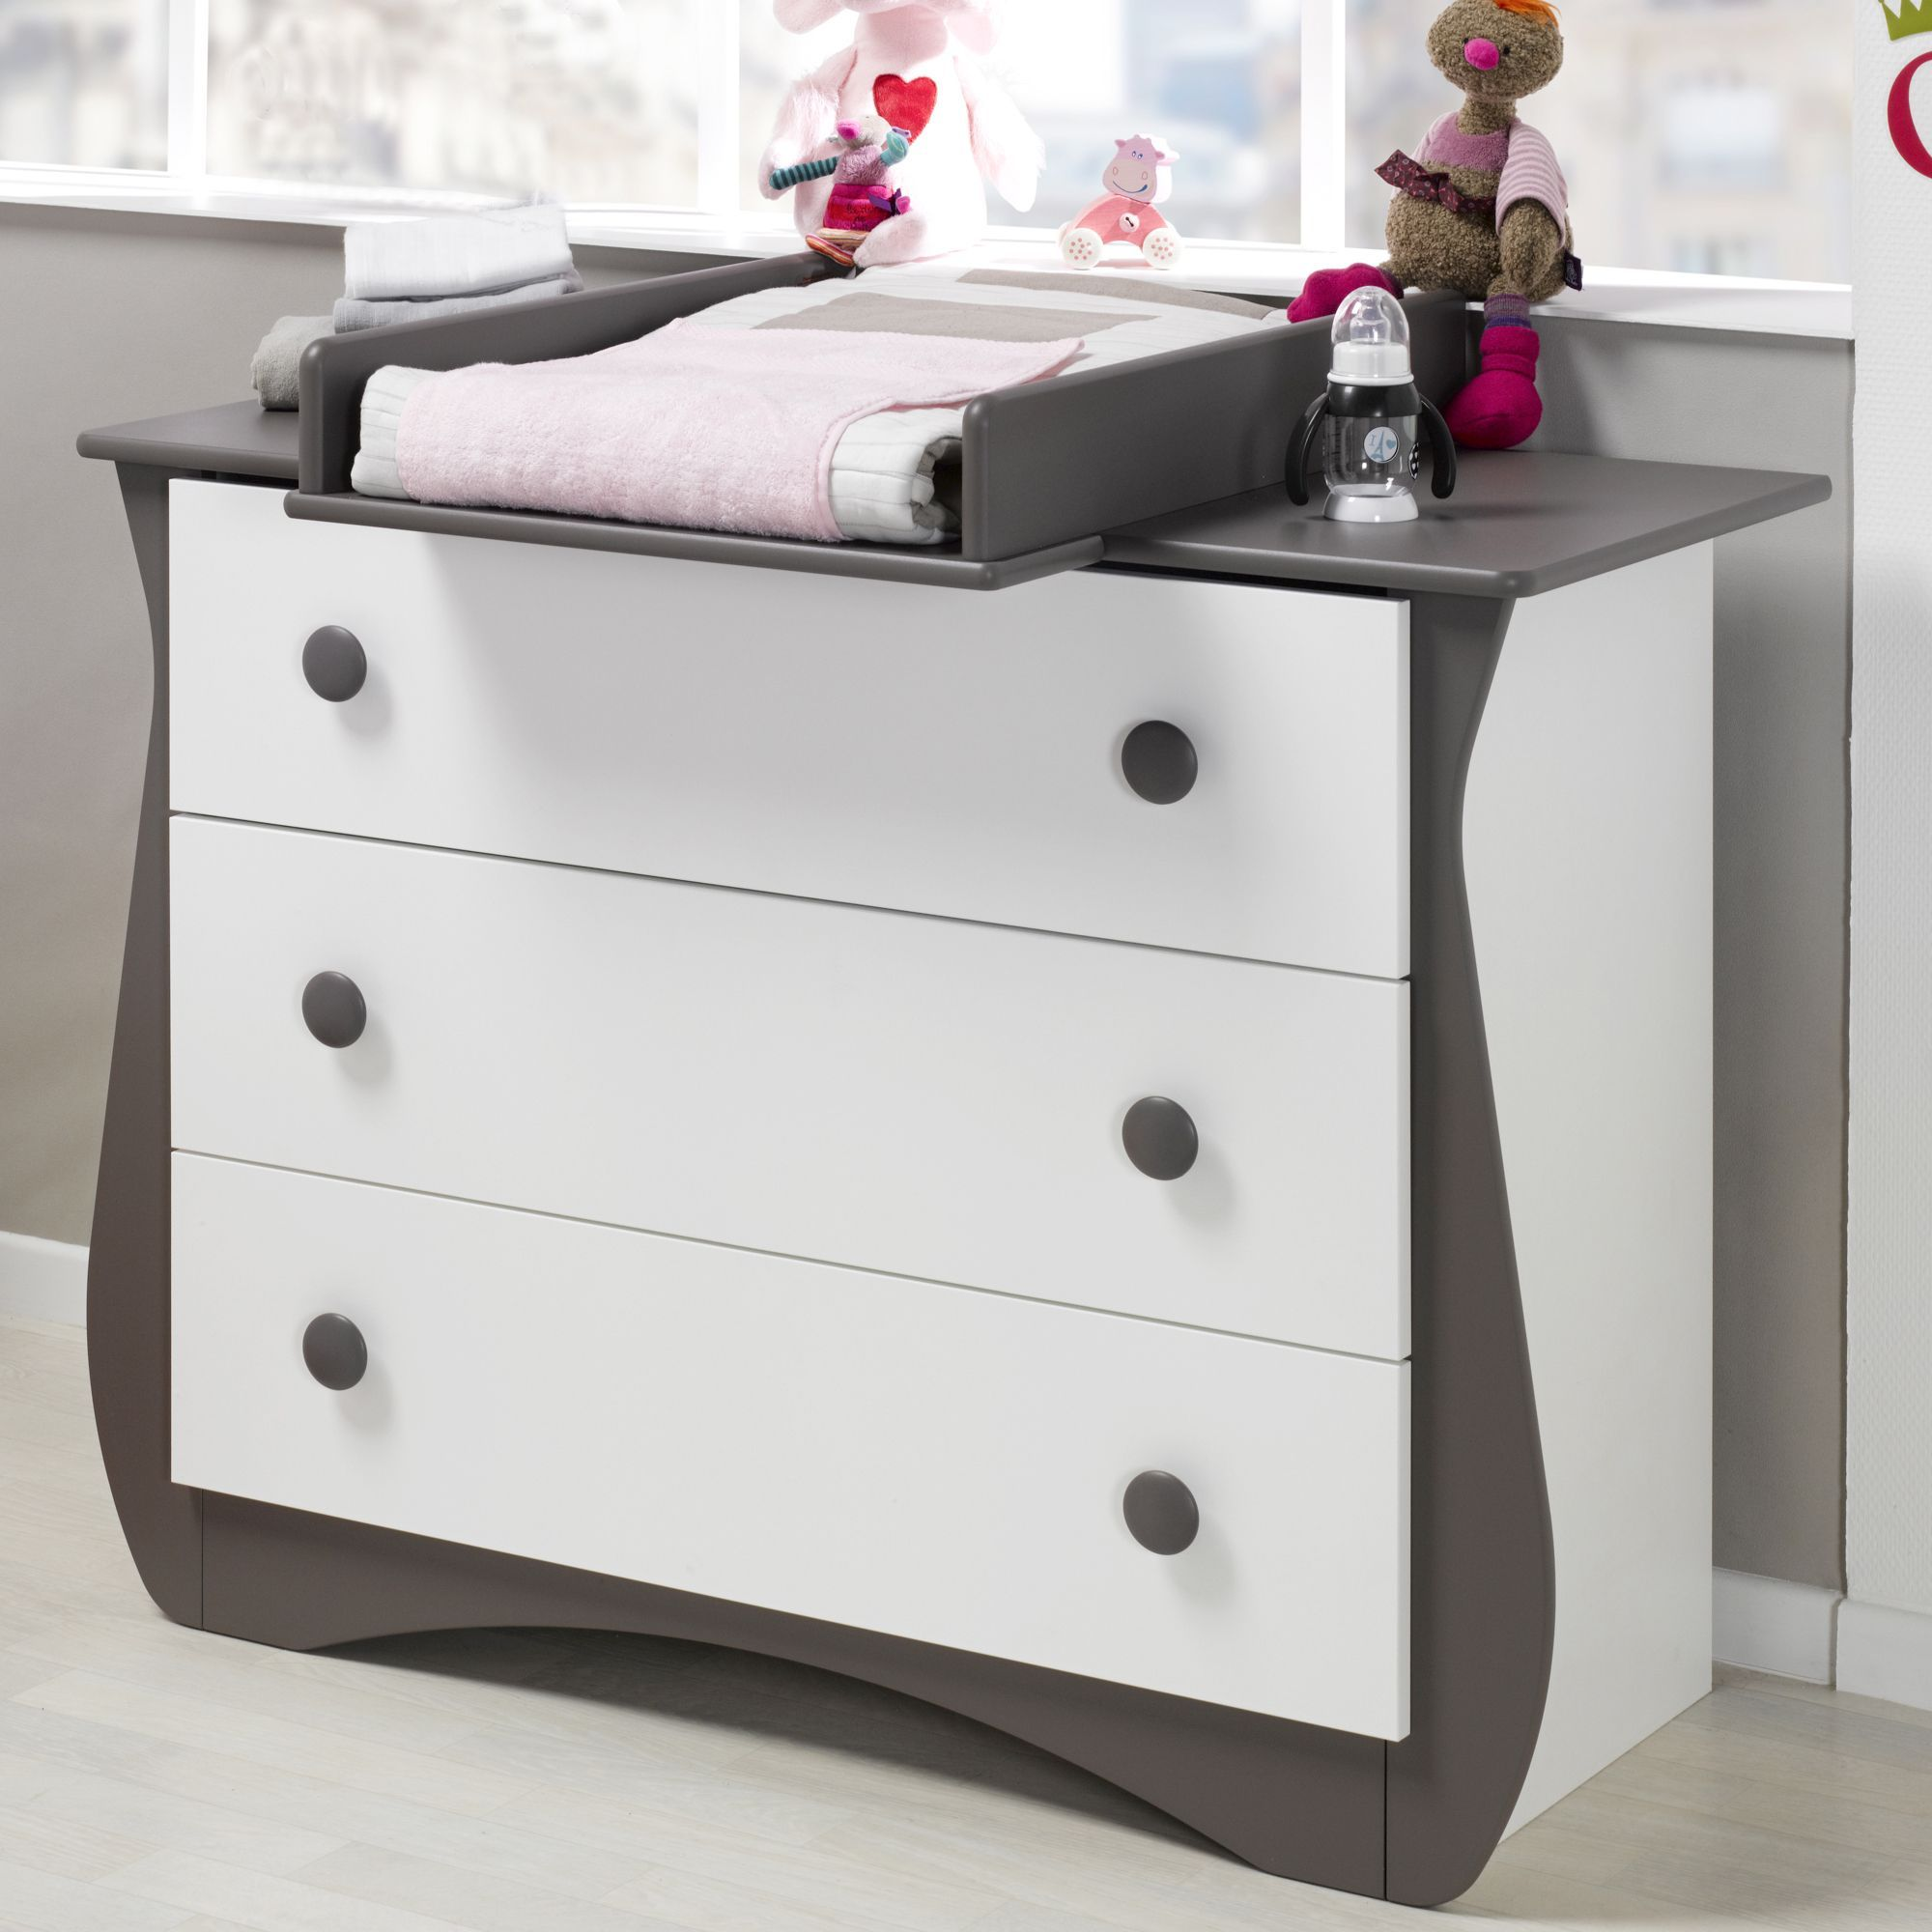 commode 3 tiroirs blanche et taupe avec plan langer loulou les armoires et commodes les. Black Bedroom Furniture Sets. Home Design Ideas